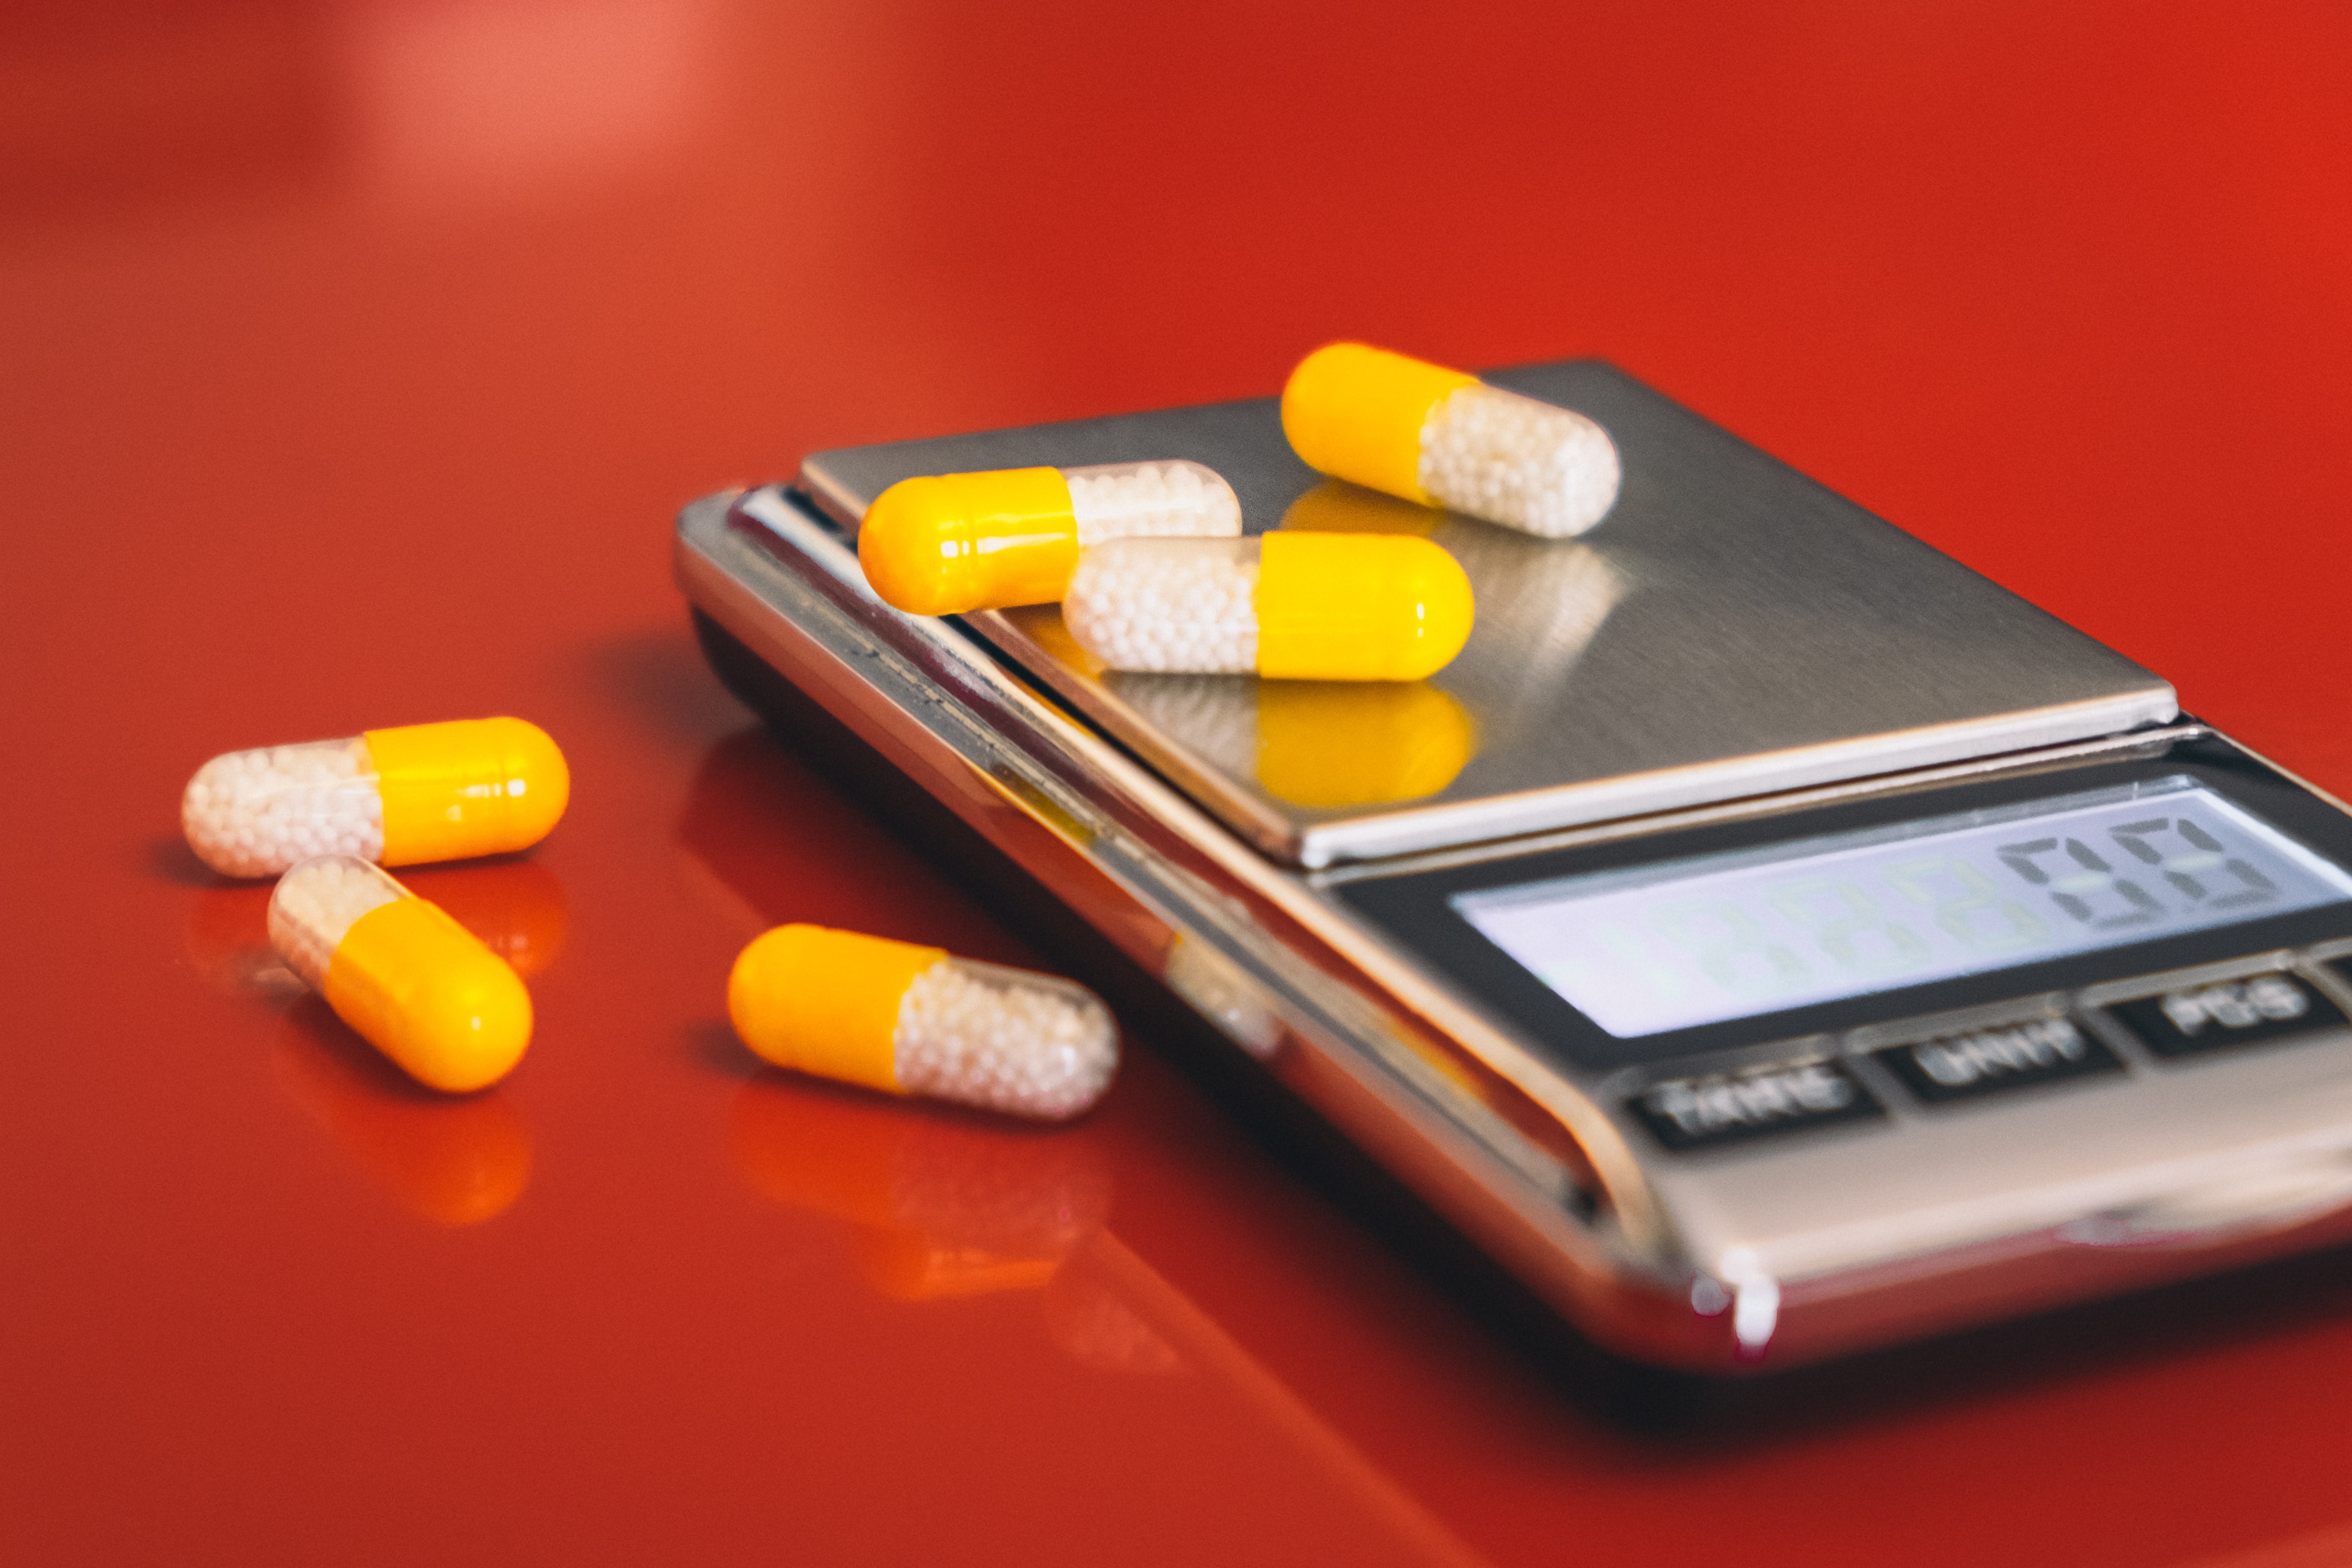 Compounded medications in capsules